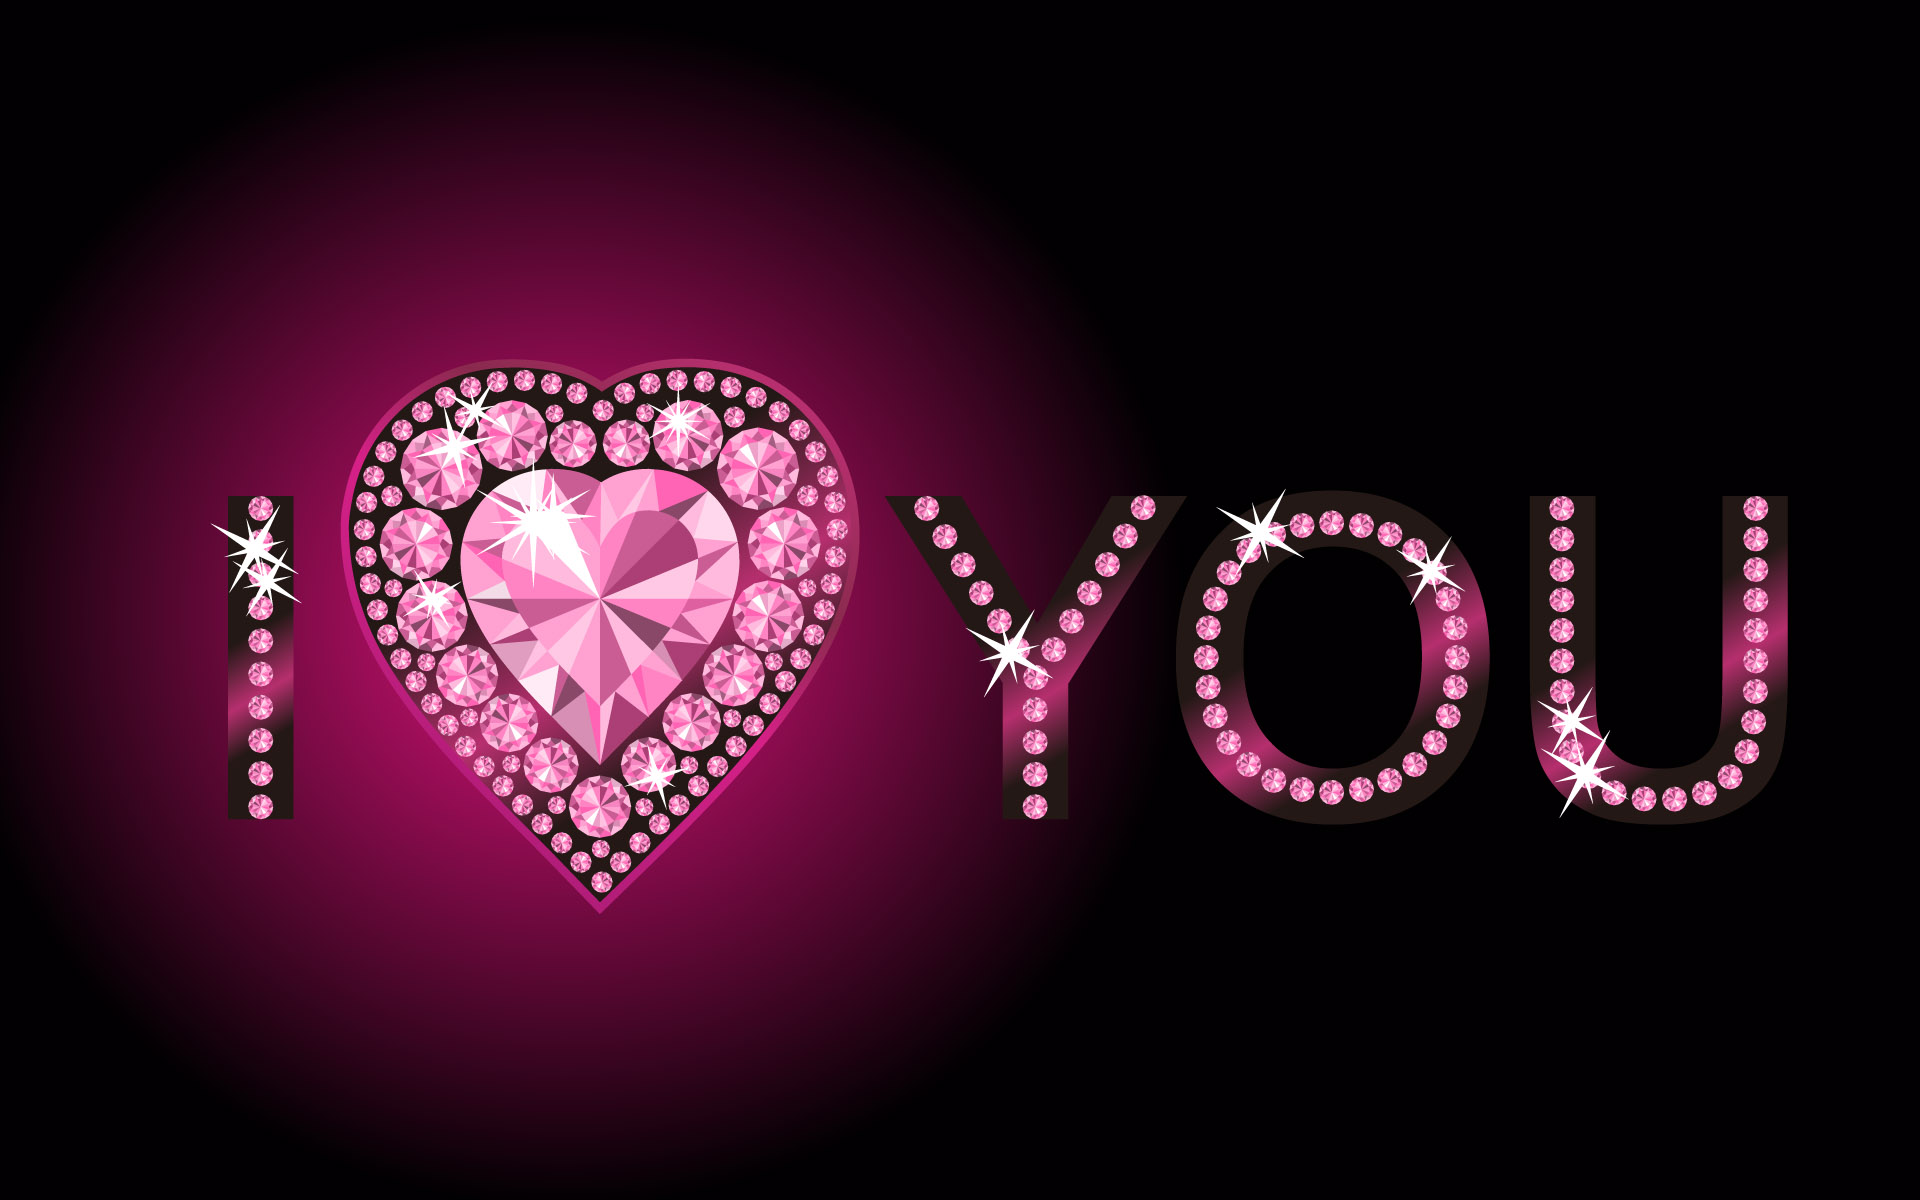 I Love You Wallpaper For Fb : wallpapers coeurs amour love - Page 4